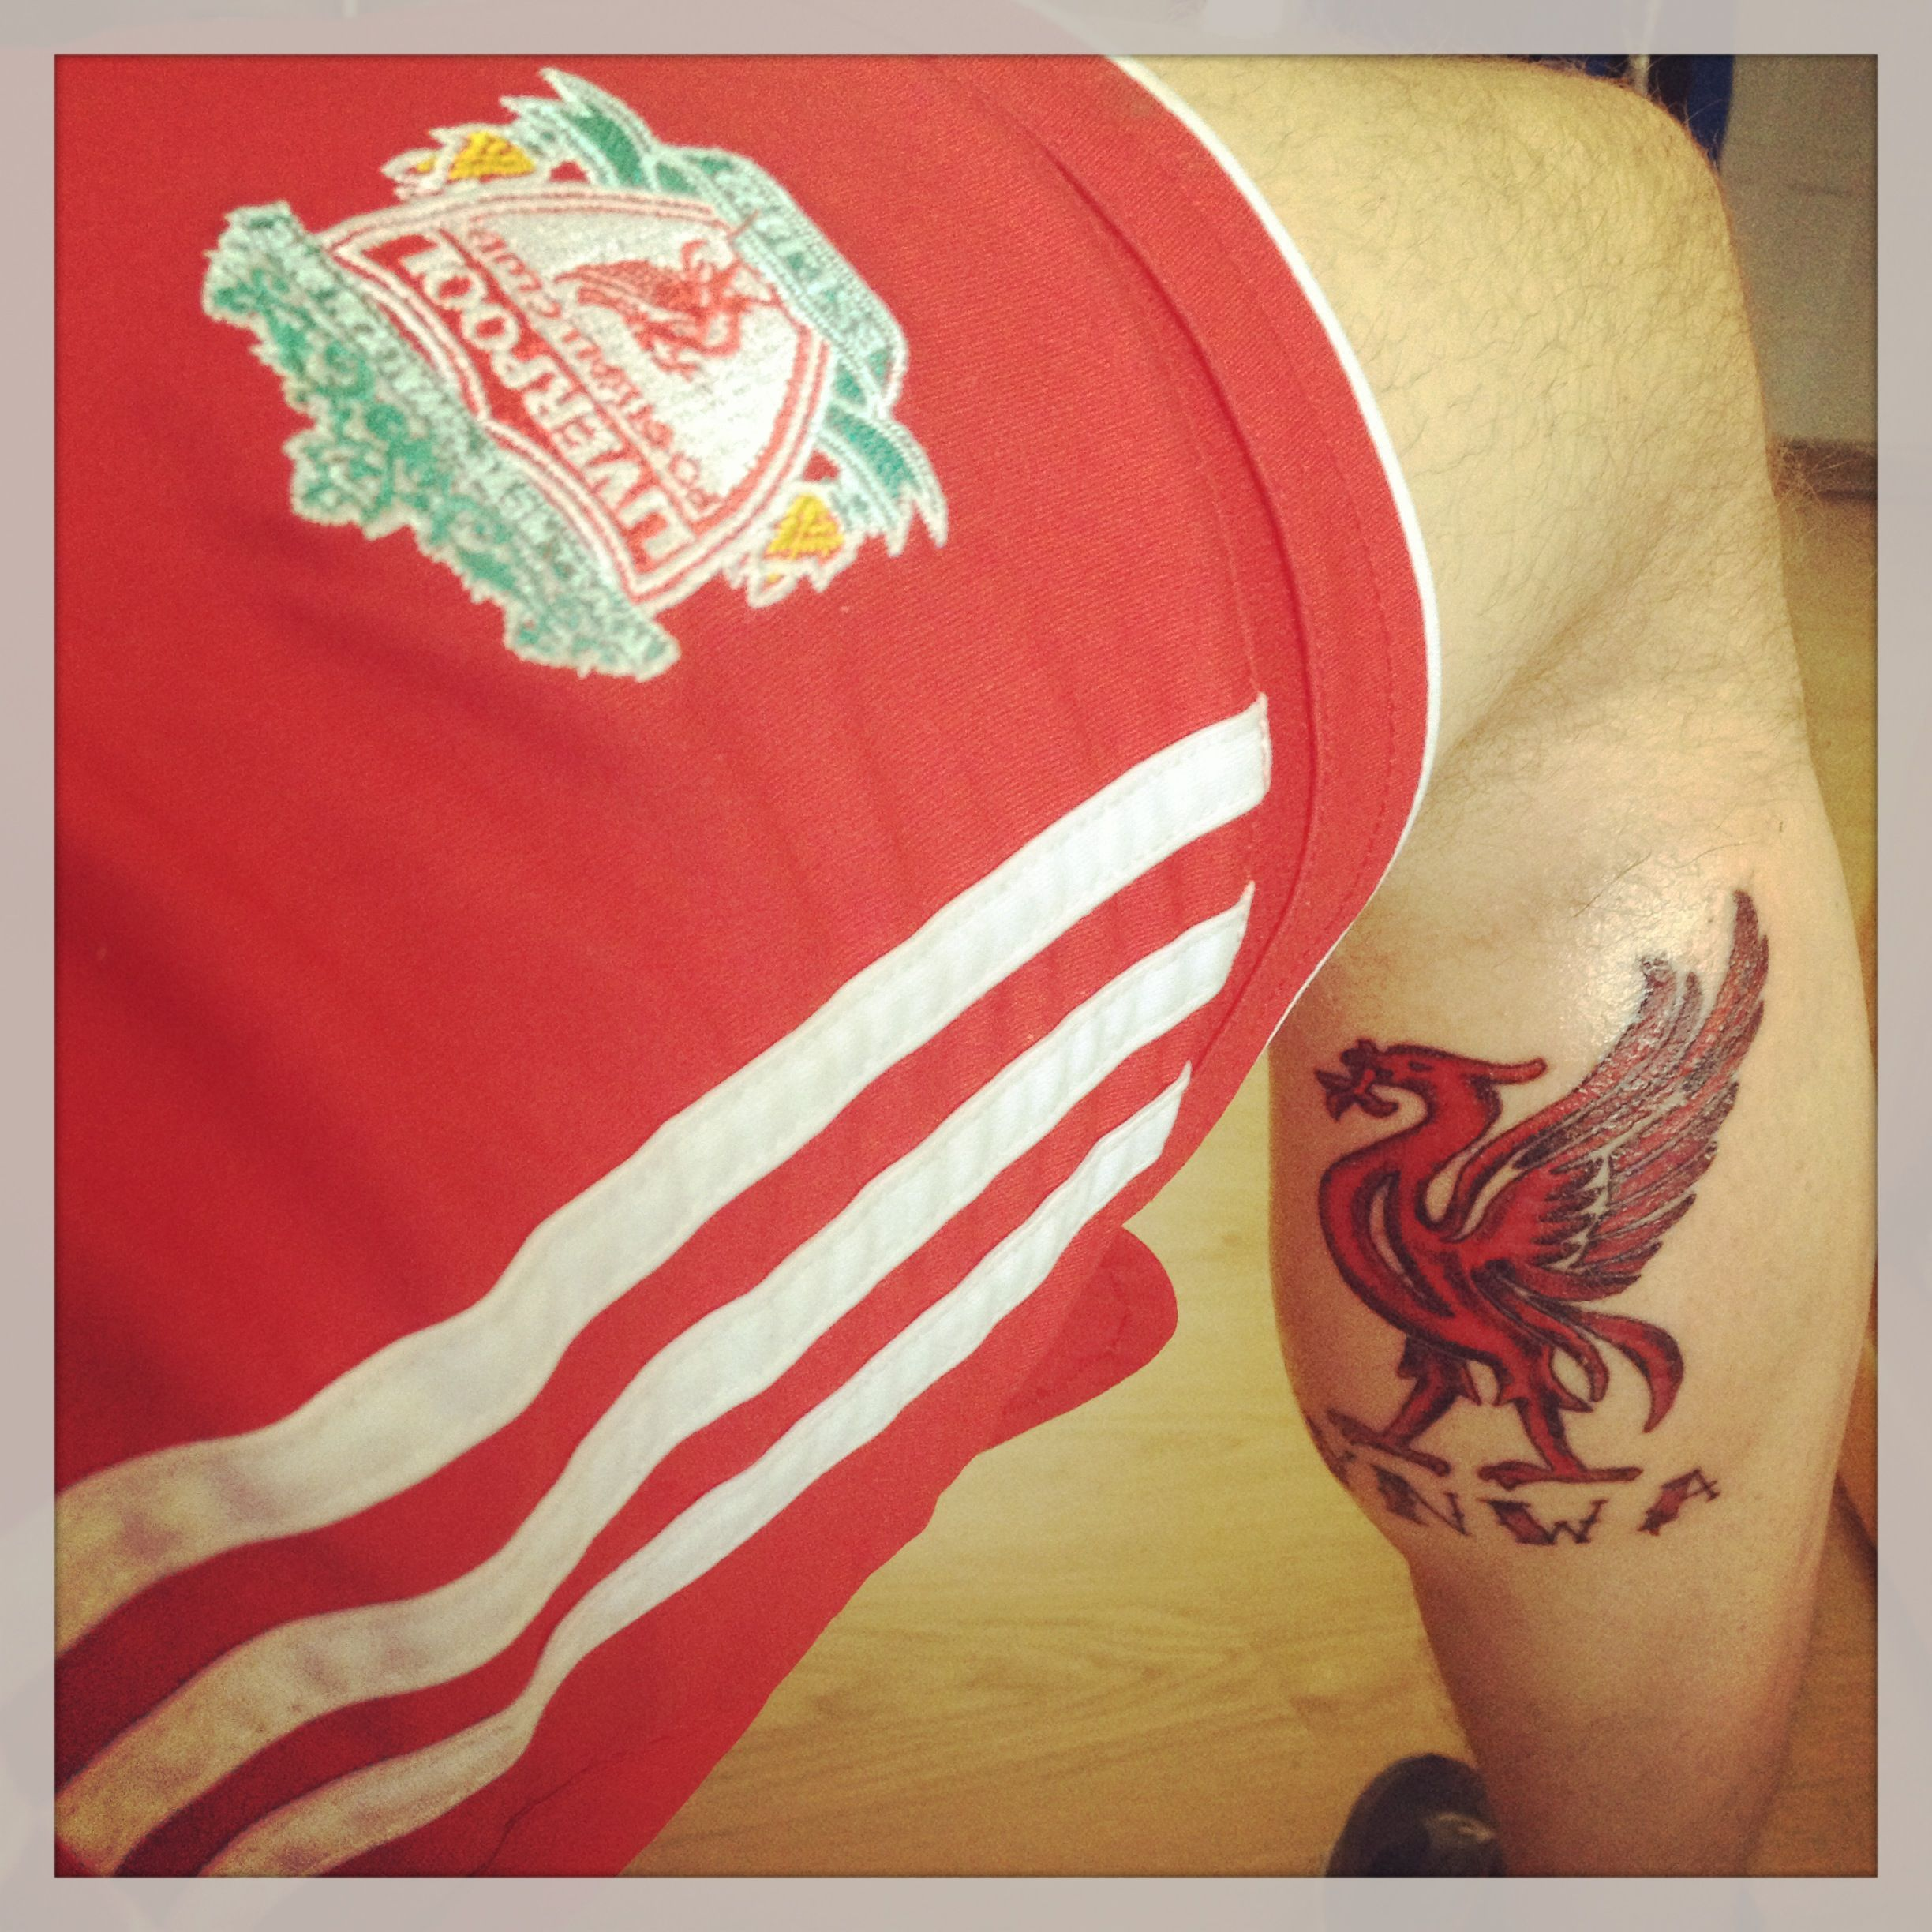 YNWA. You'll Never Walk Alone. Liverpool liverbird tattoo